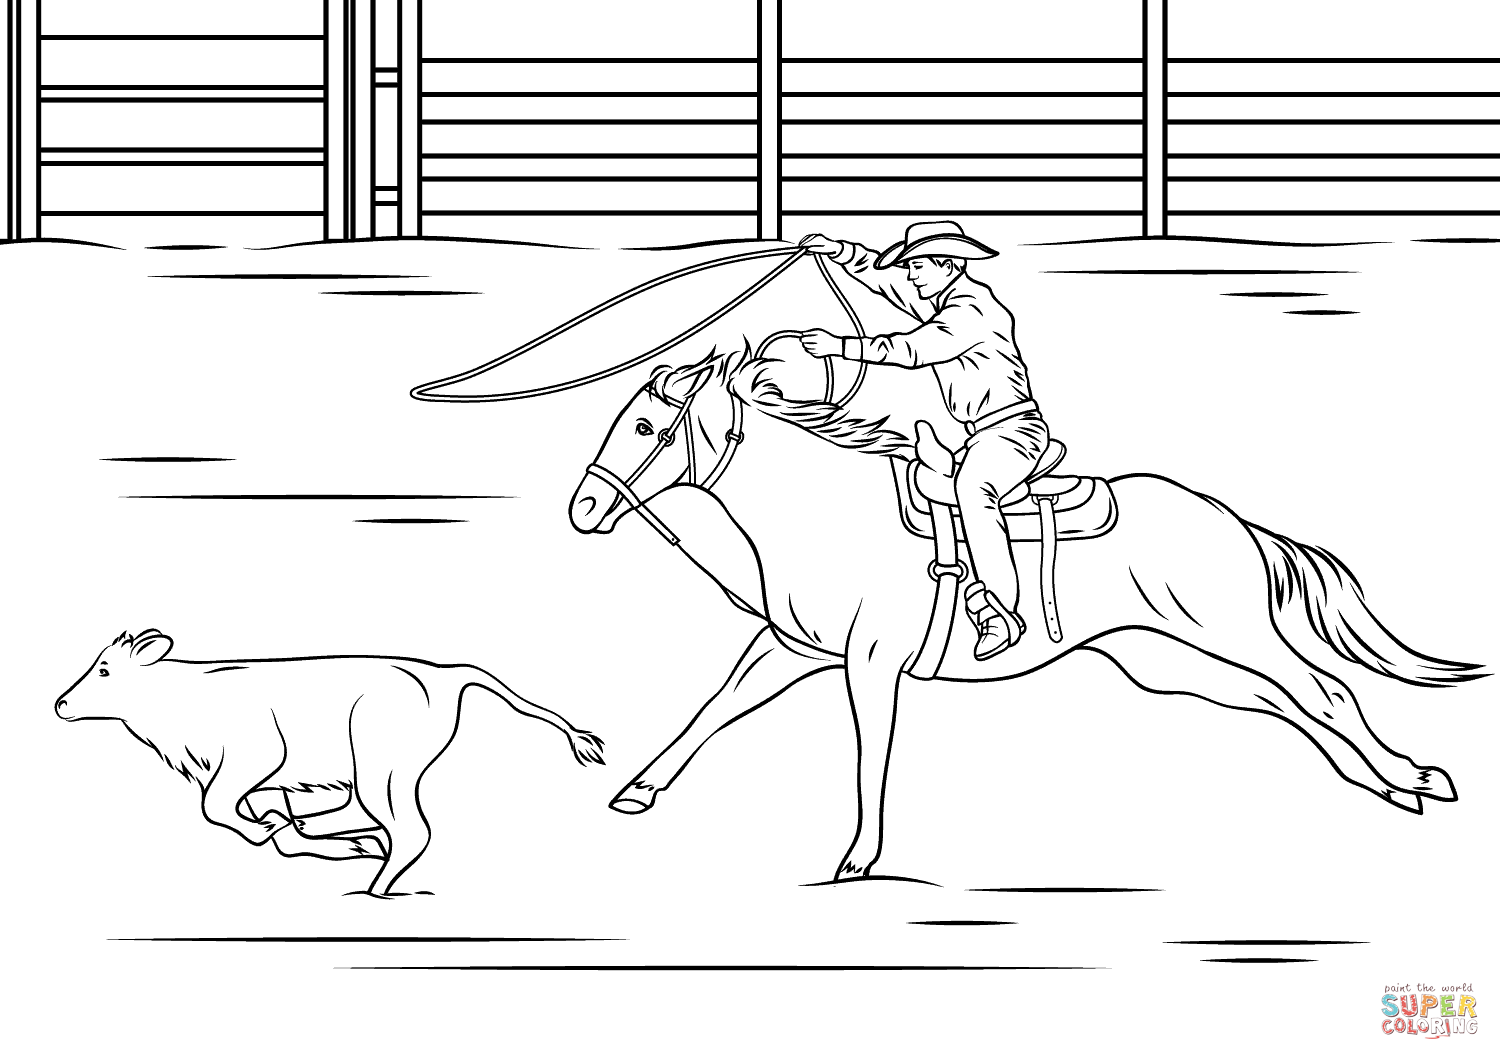 Calf Roping Rodeo Coloring Page From Rodeo Category Select From 27041 Printable Crafts Of Cartoons Nature Calf Roping Horse Coloring Pages Cow Coloring Pages